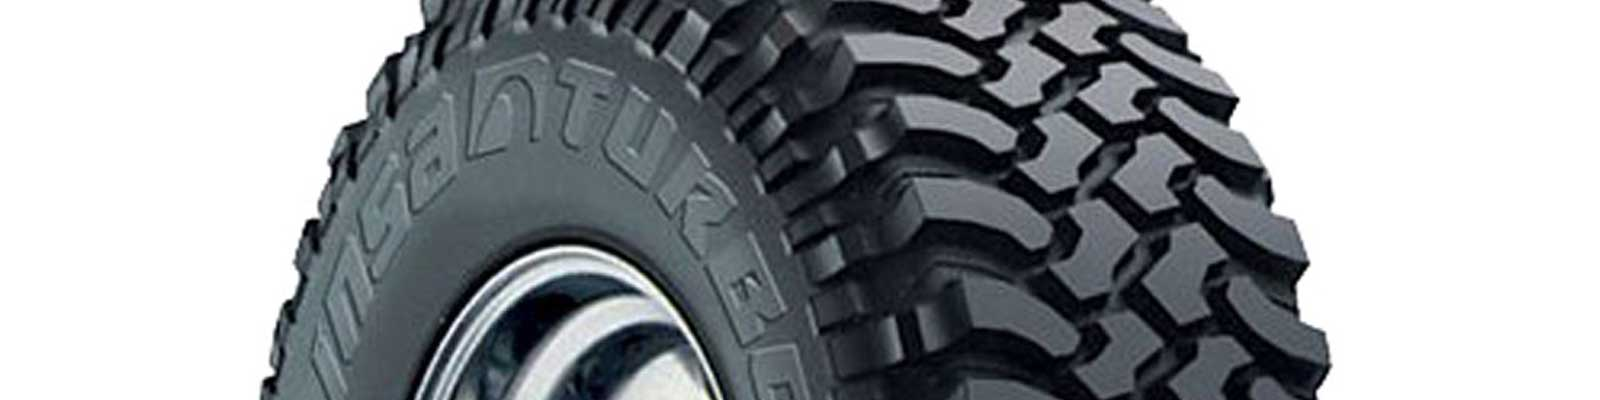 Insa Turbo Remoulded Tyres